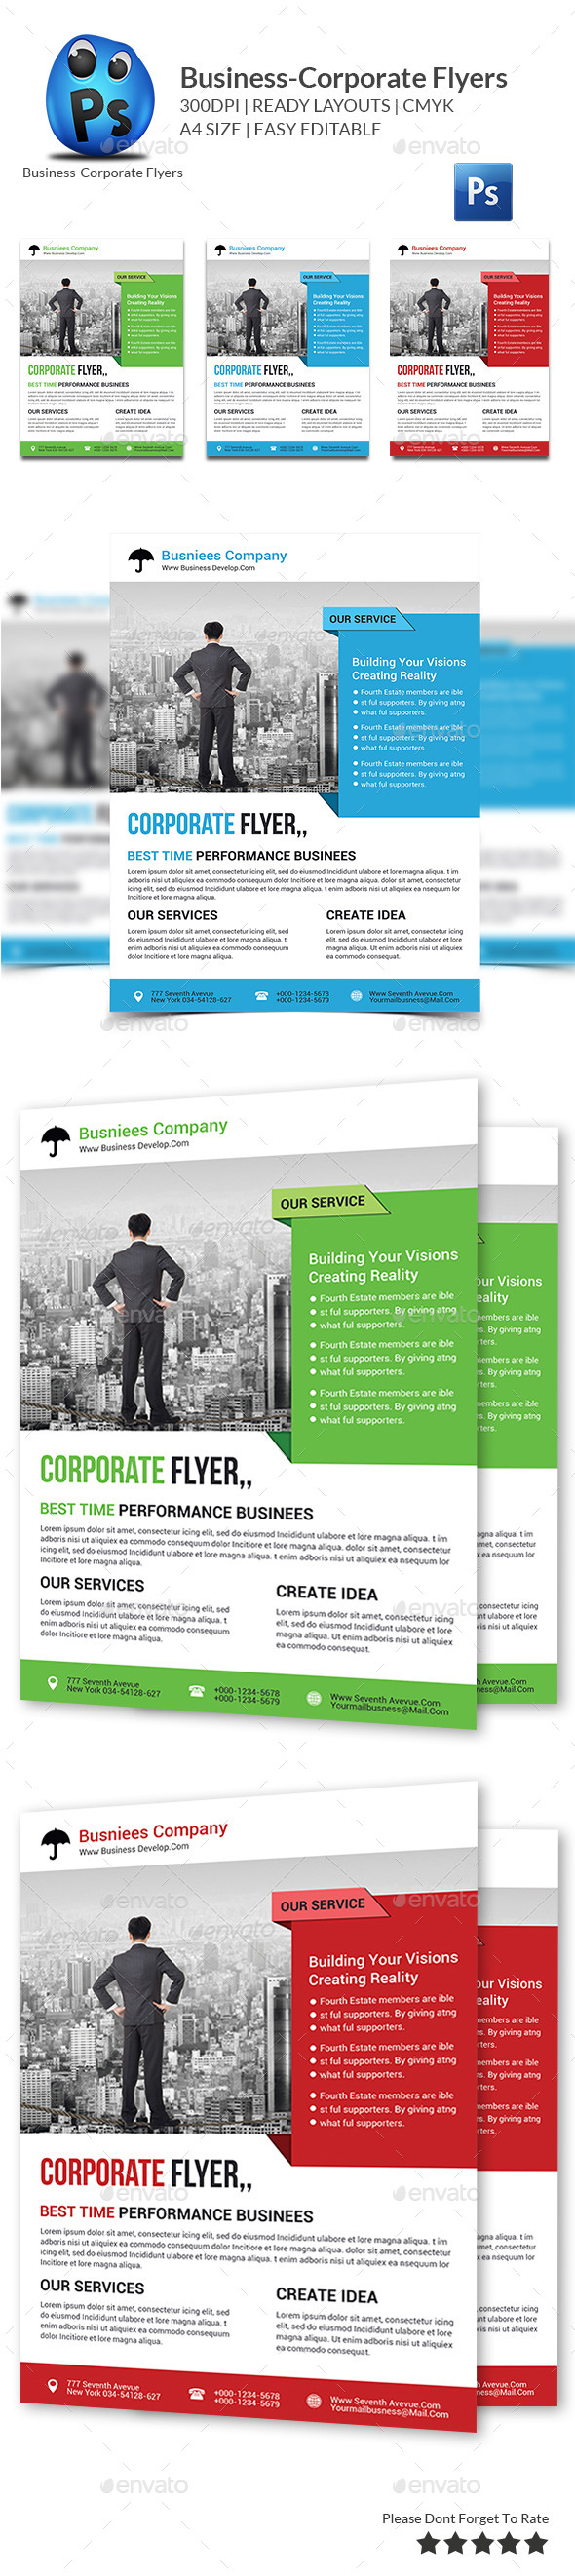 Business Planner Flyer Print Templates - Corporate Flyers